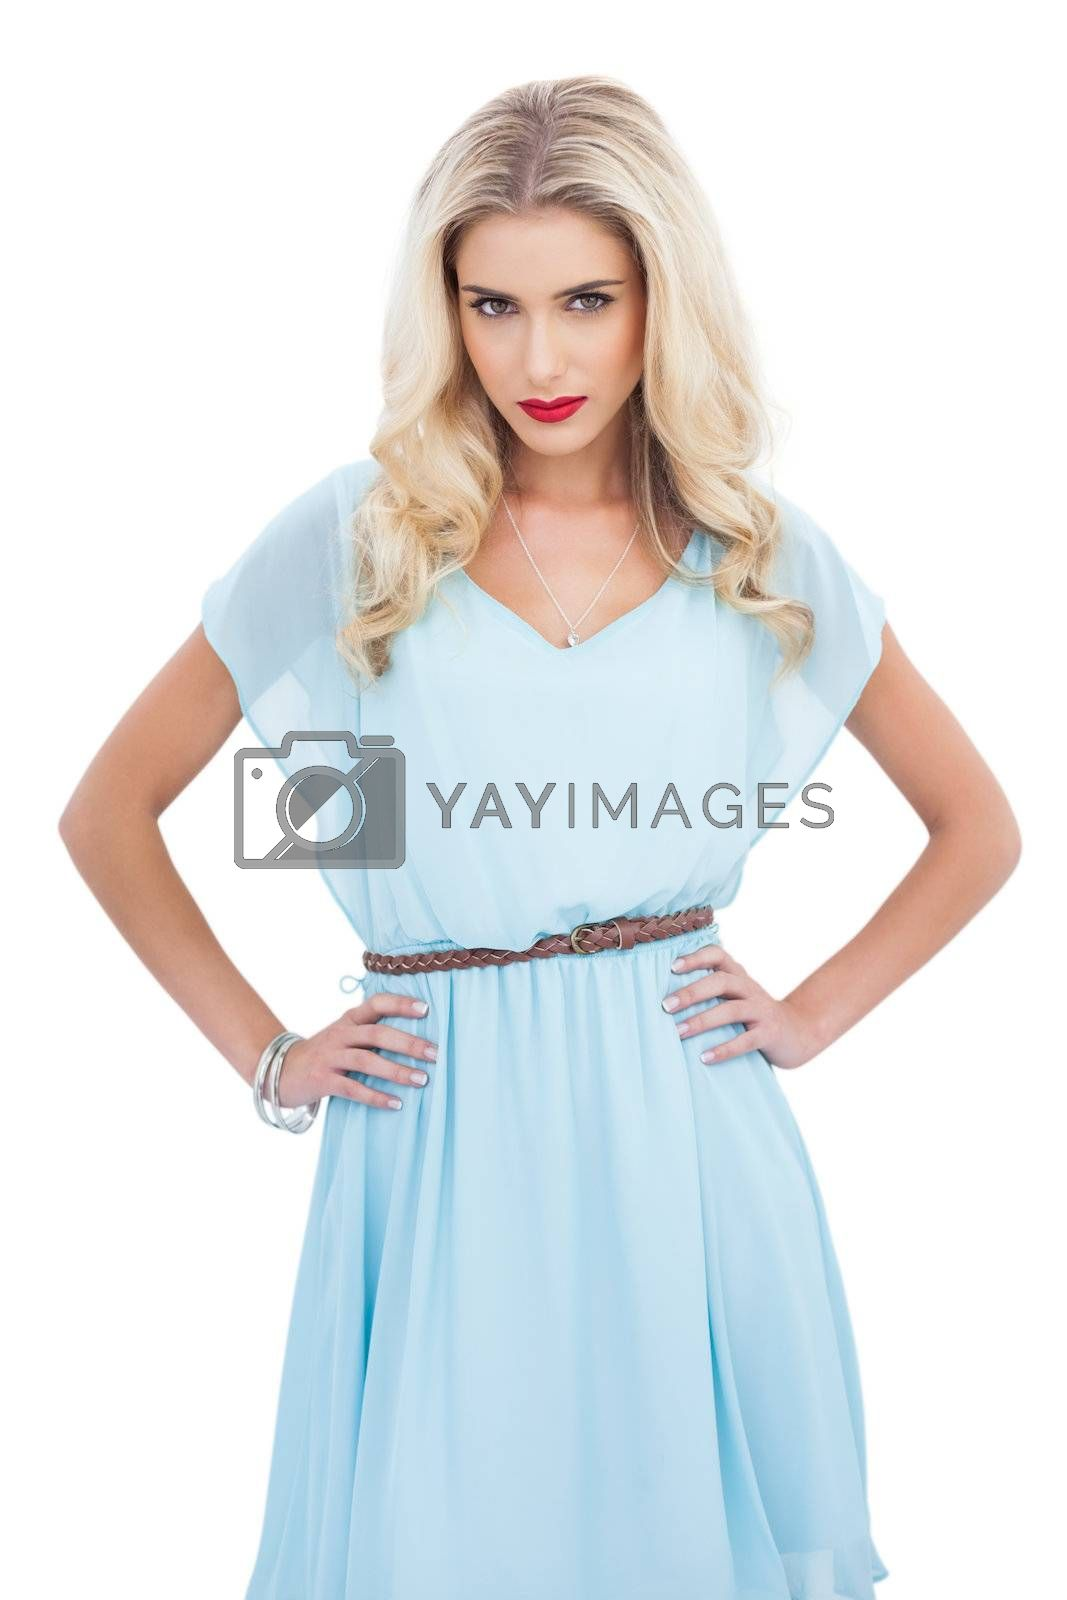 Lovely blonde model in blue dress posing with hands on the hips by Wavebreakmedia